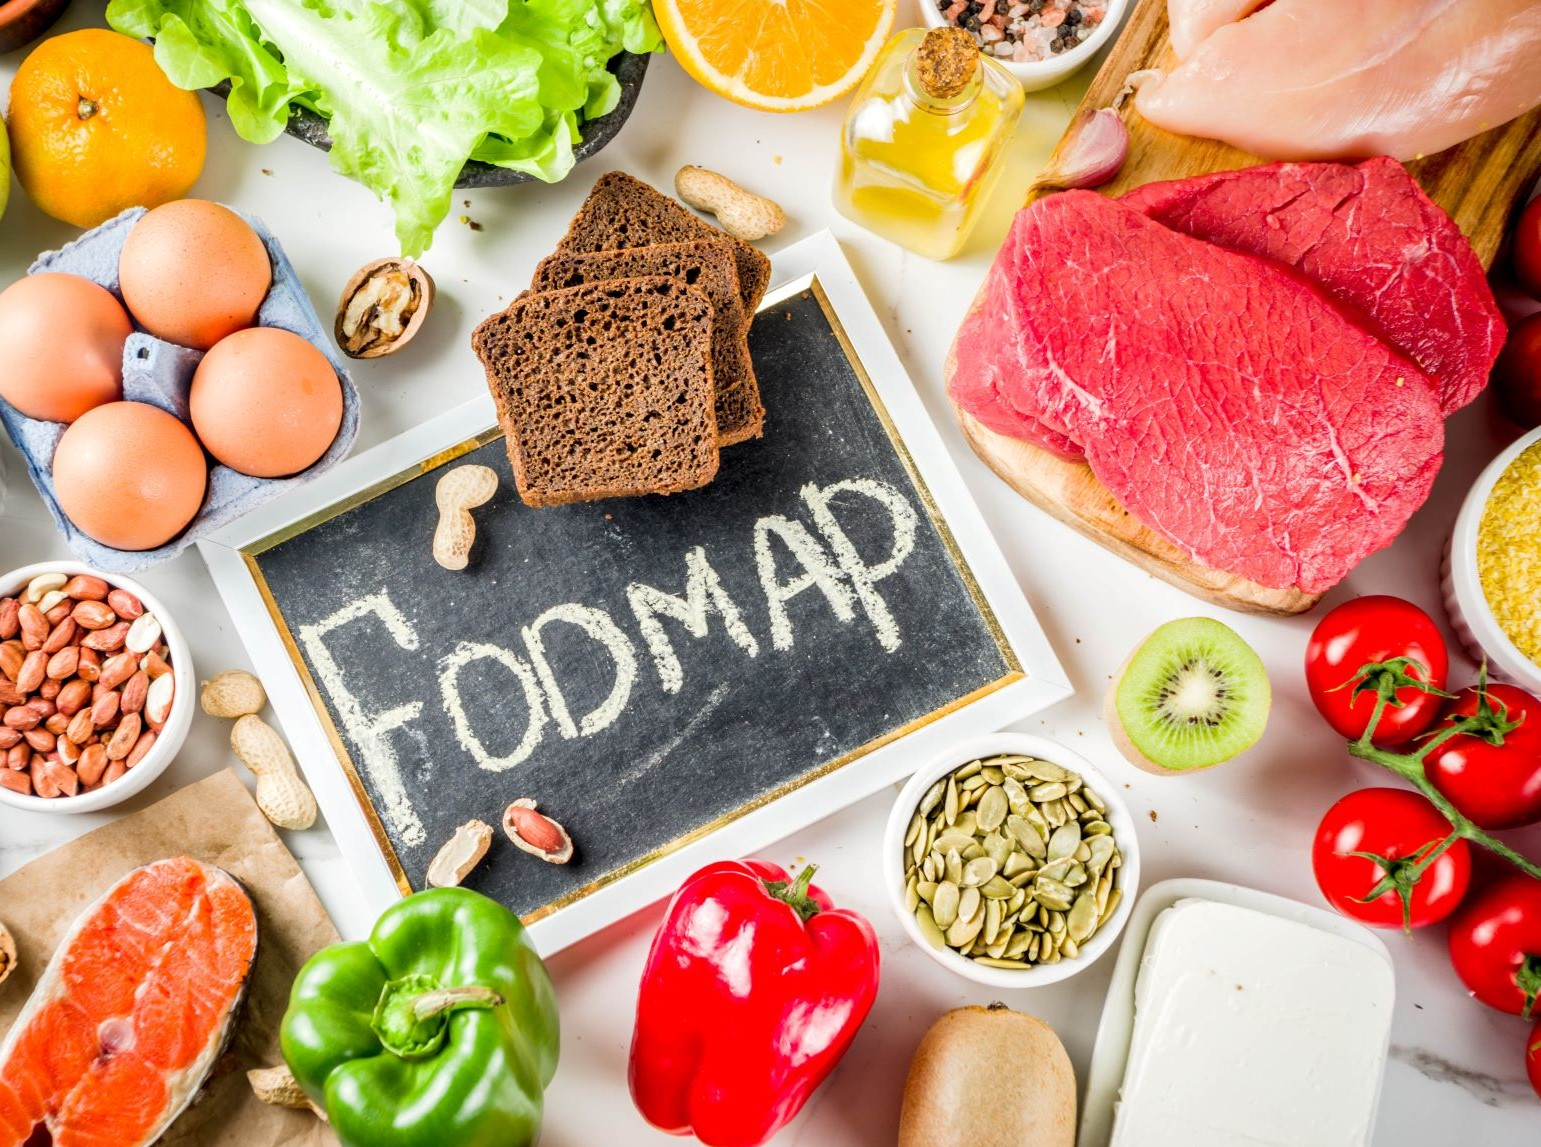 Fodmap Picture 1069153602_7360x4912